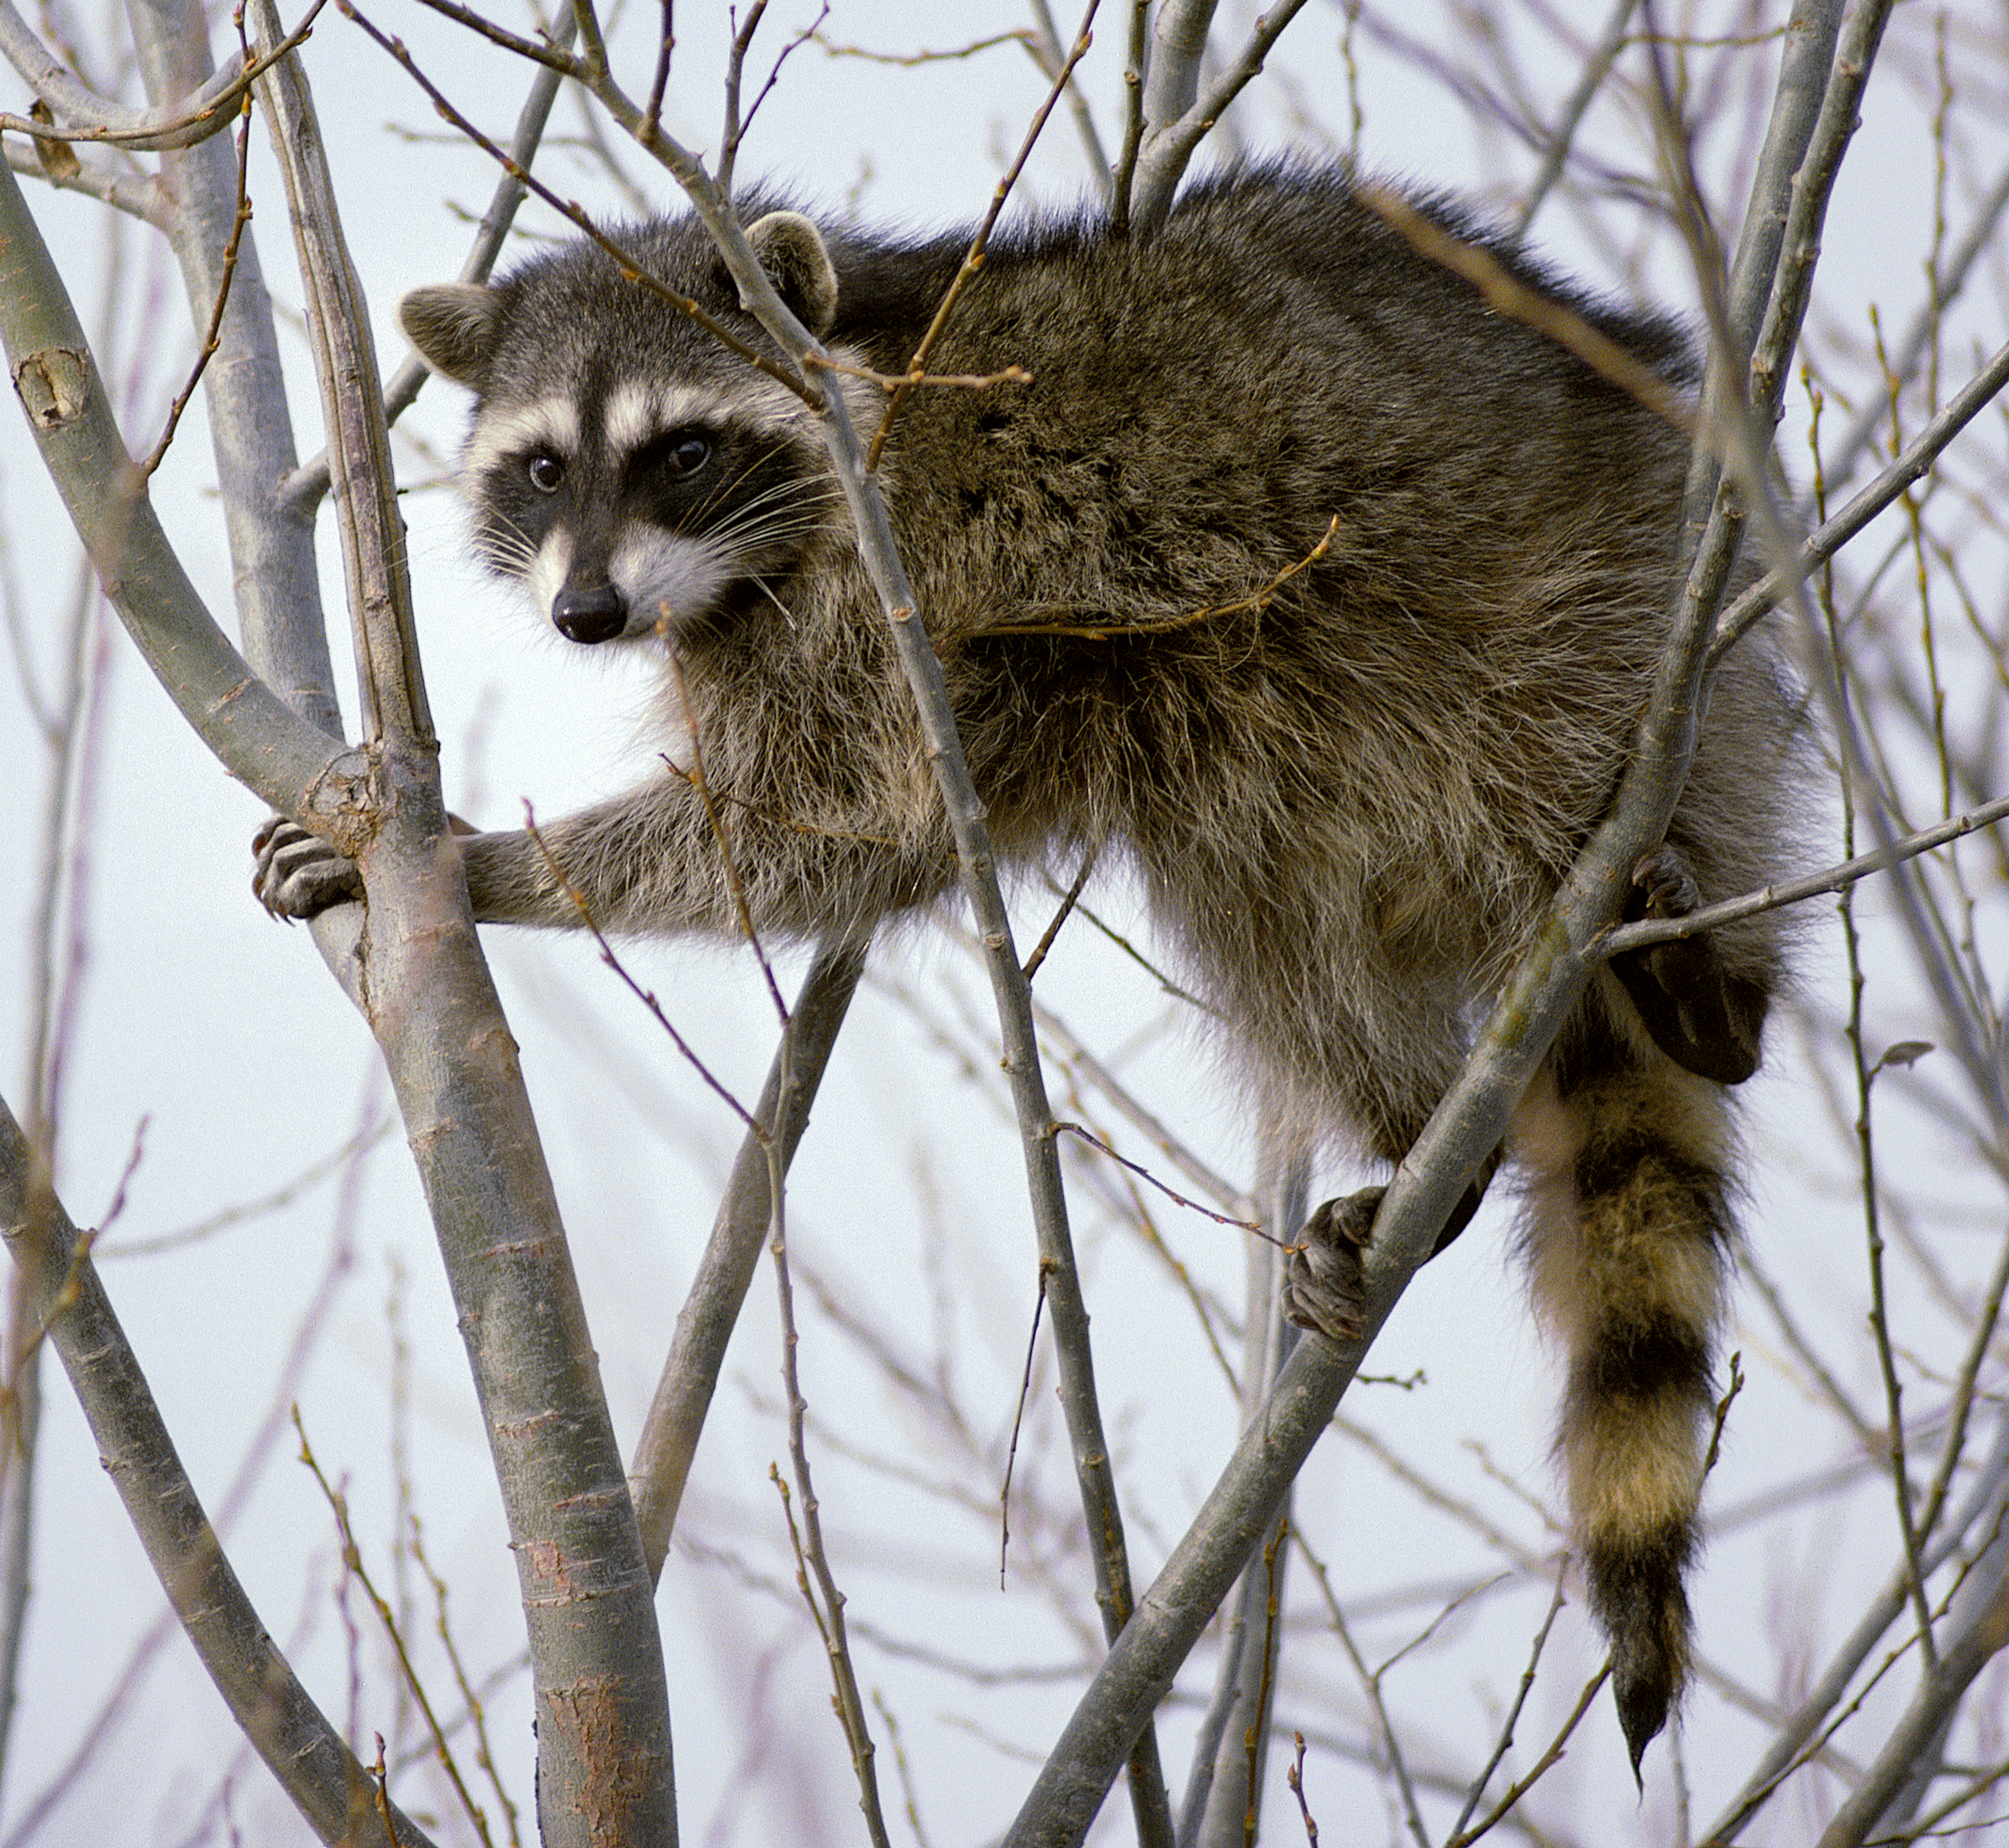 Raccoon - Wikipedia